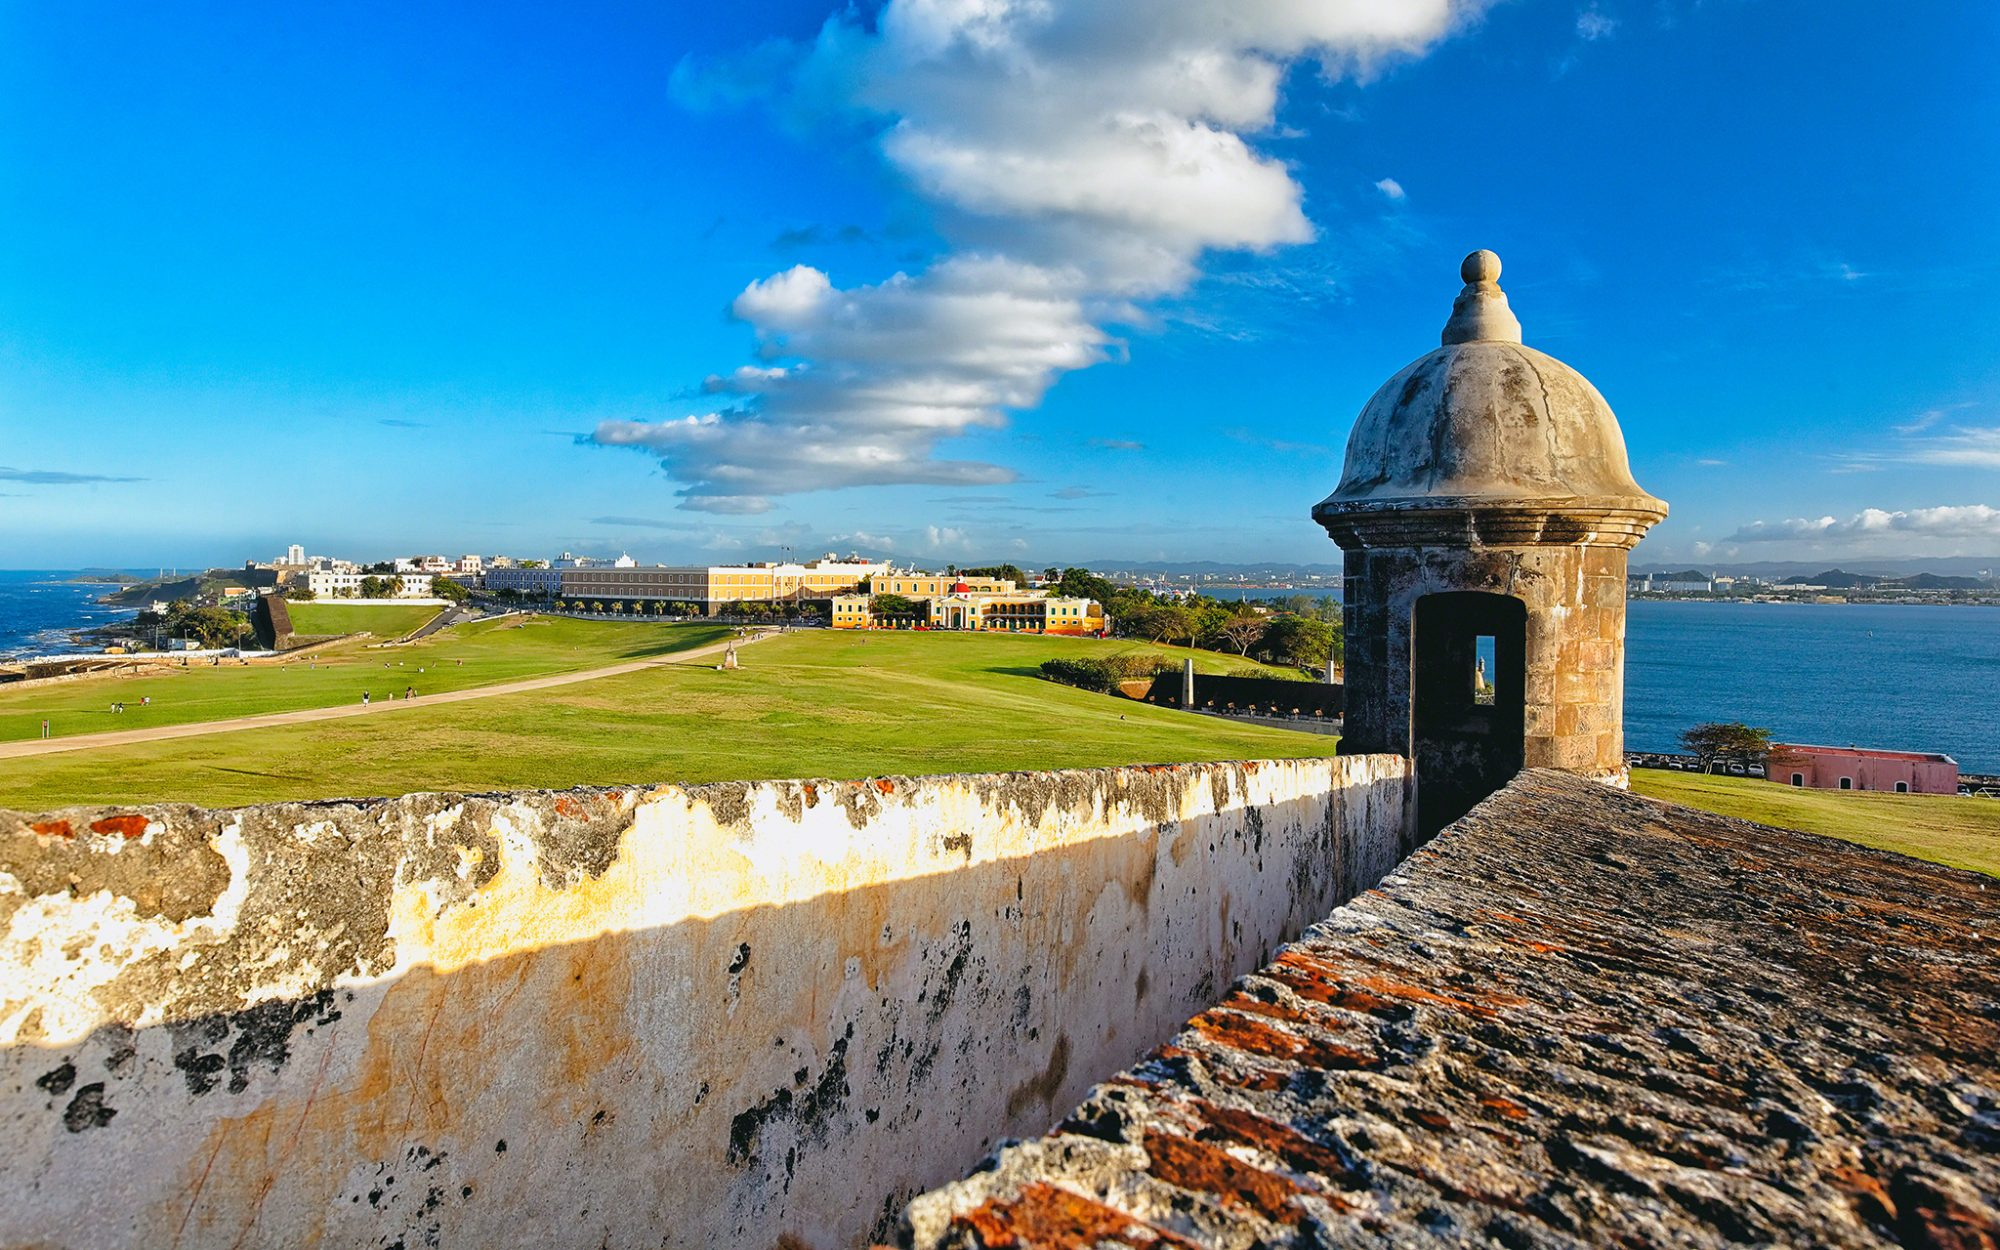 Best Views in America: El Morro Fort, San Juan, P.R.